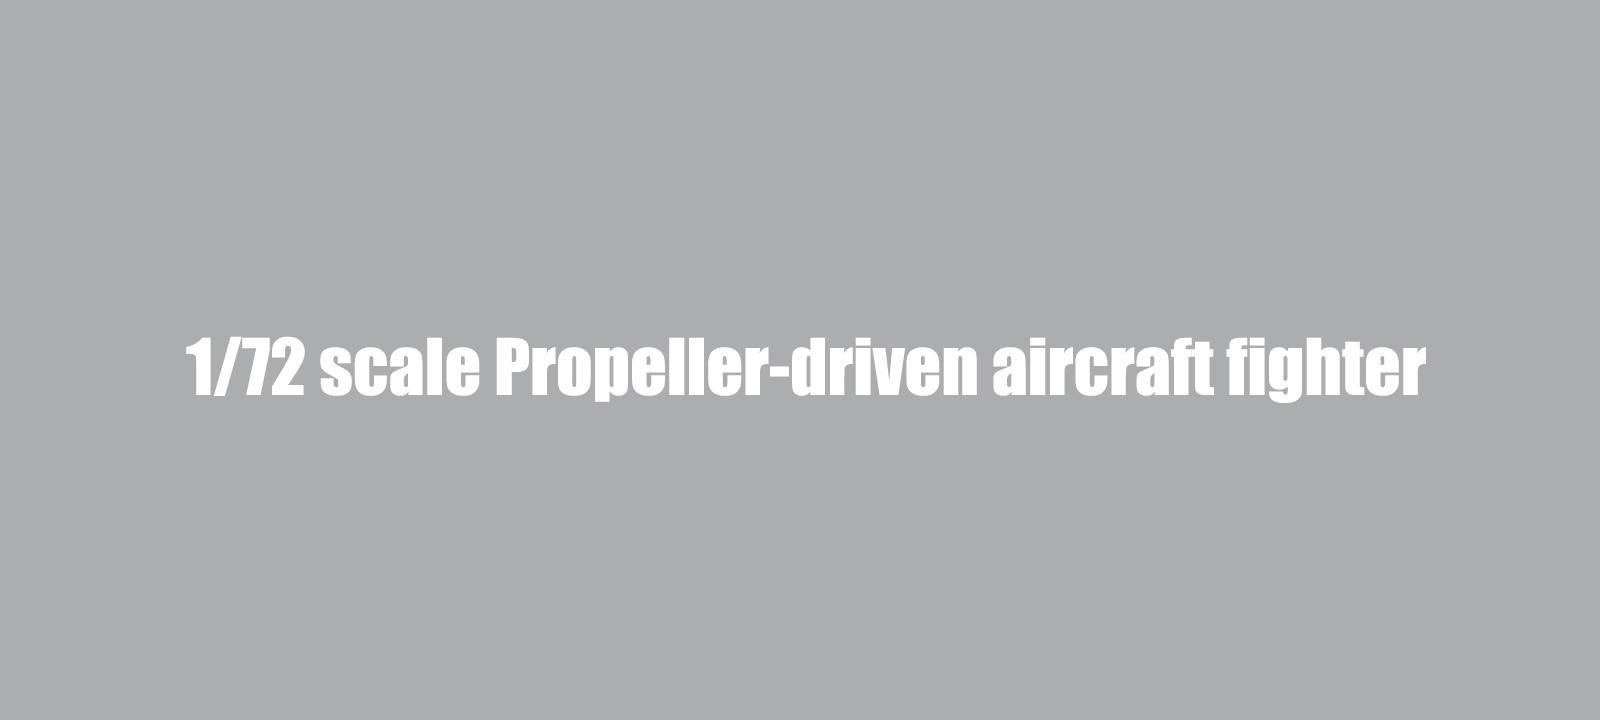 72nd scale Propeller aircraft fighter